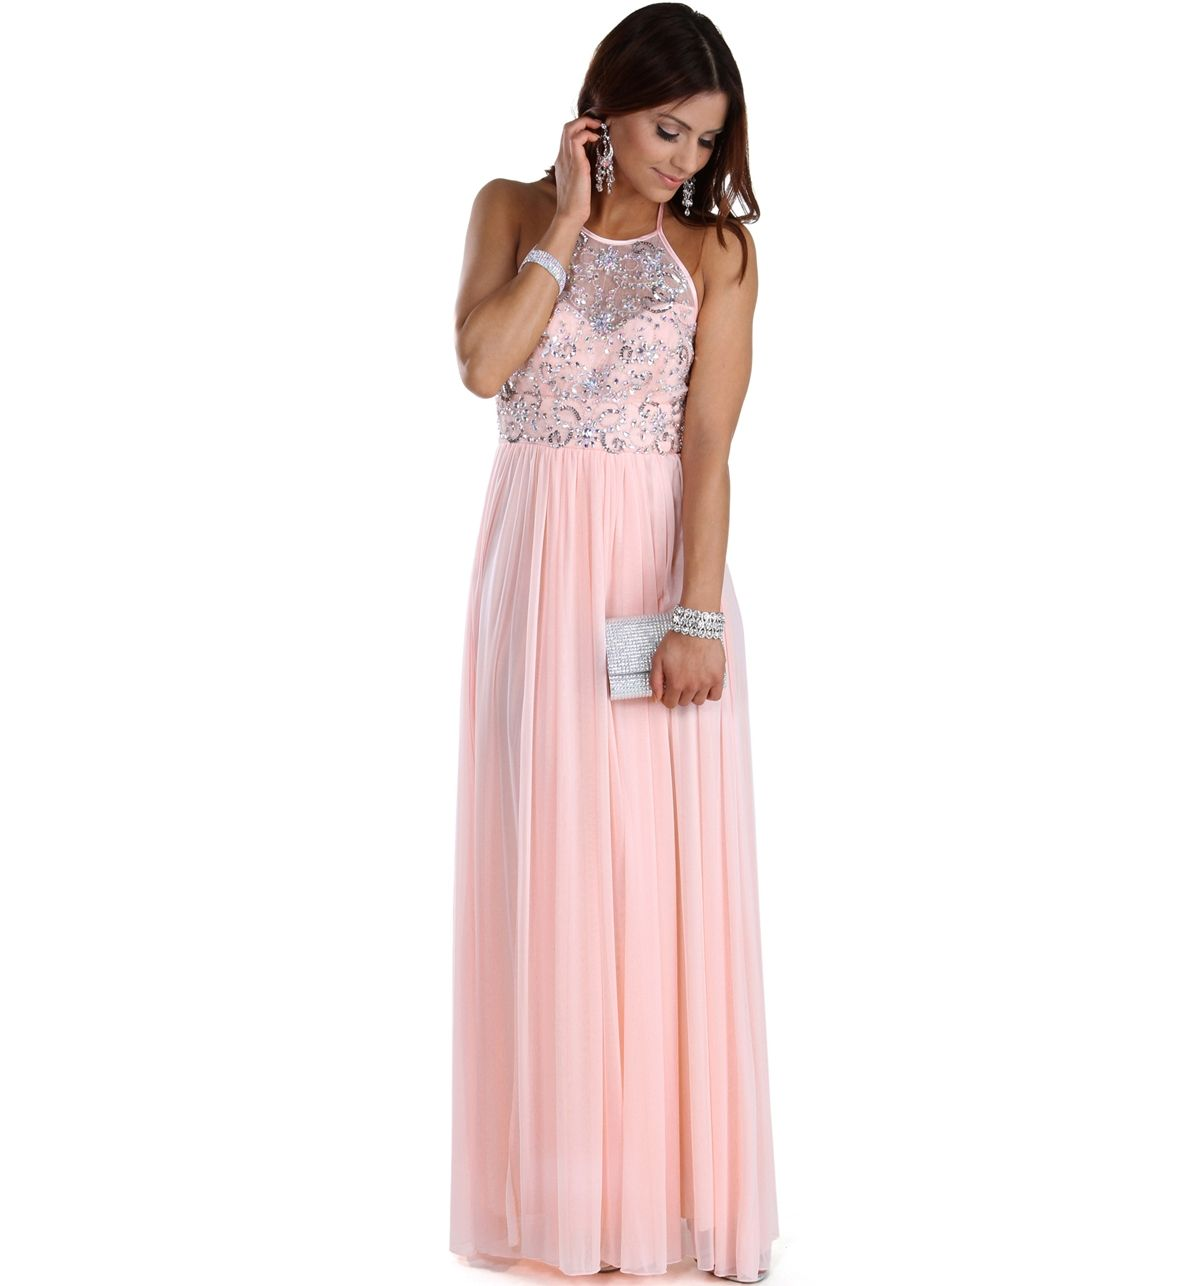 Tierra-Pink Prom Dress | fashionista | Pinterest | Vestiditos